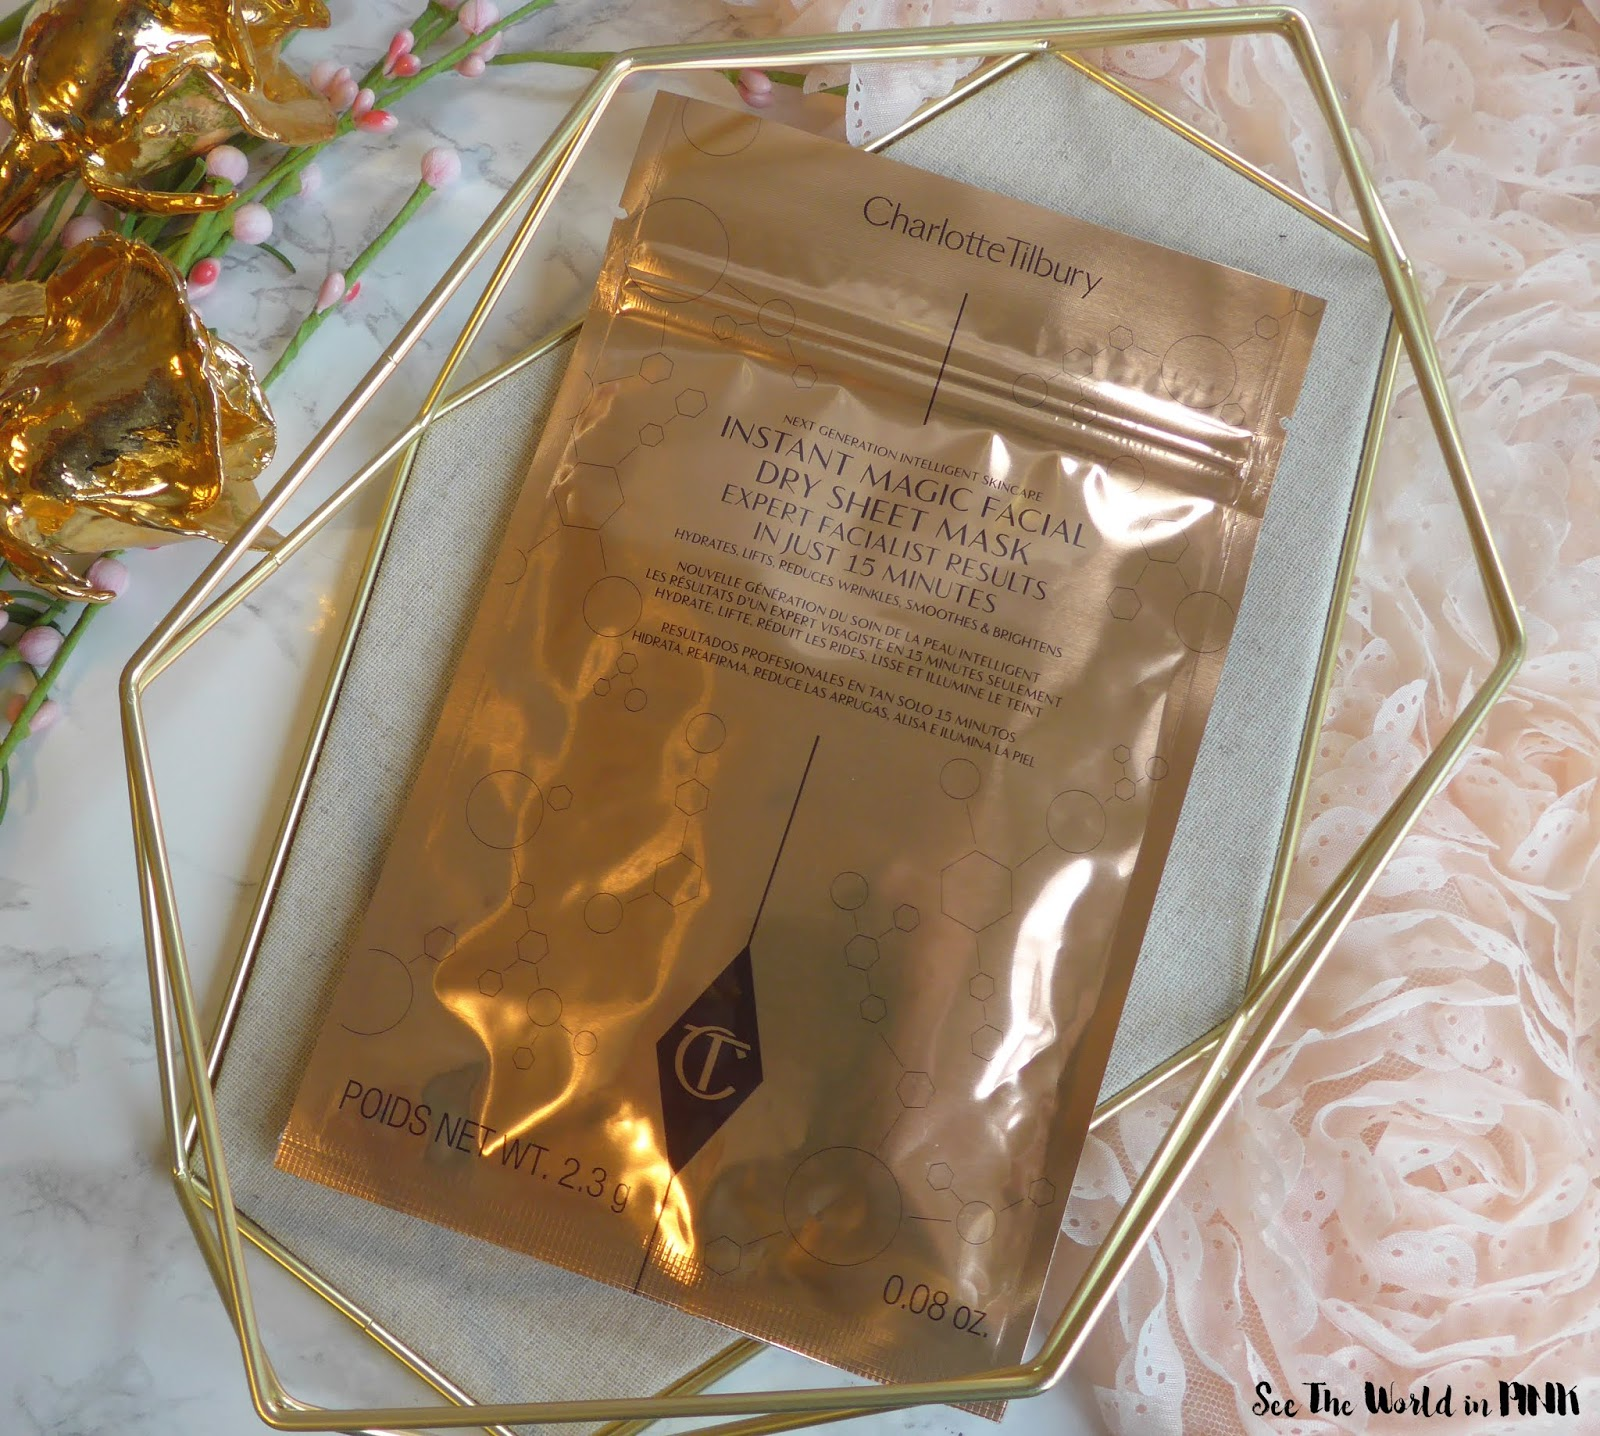 Skincare Sunday - Charlotte Tilbury Instant Magic Facial Dry Sheet Mask